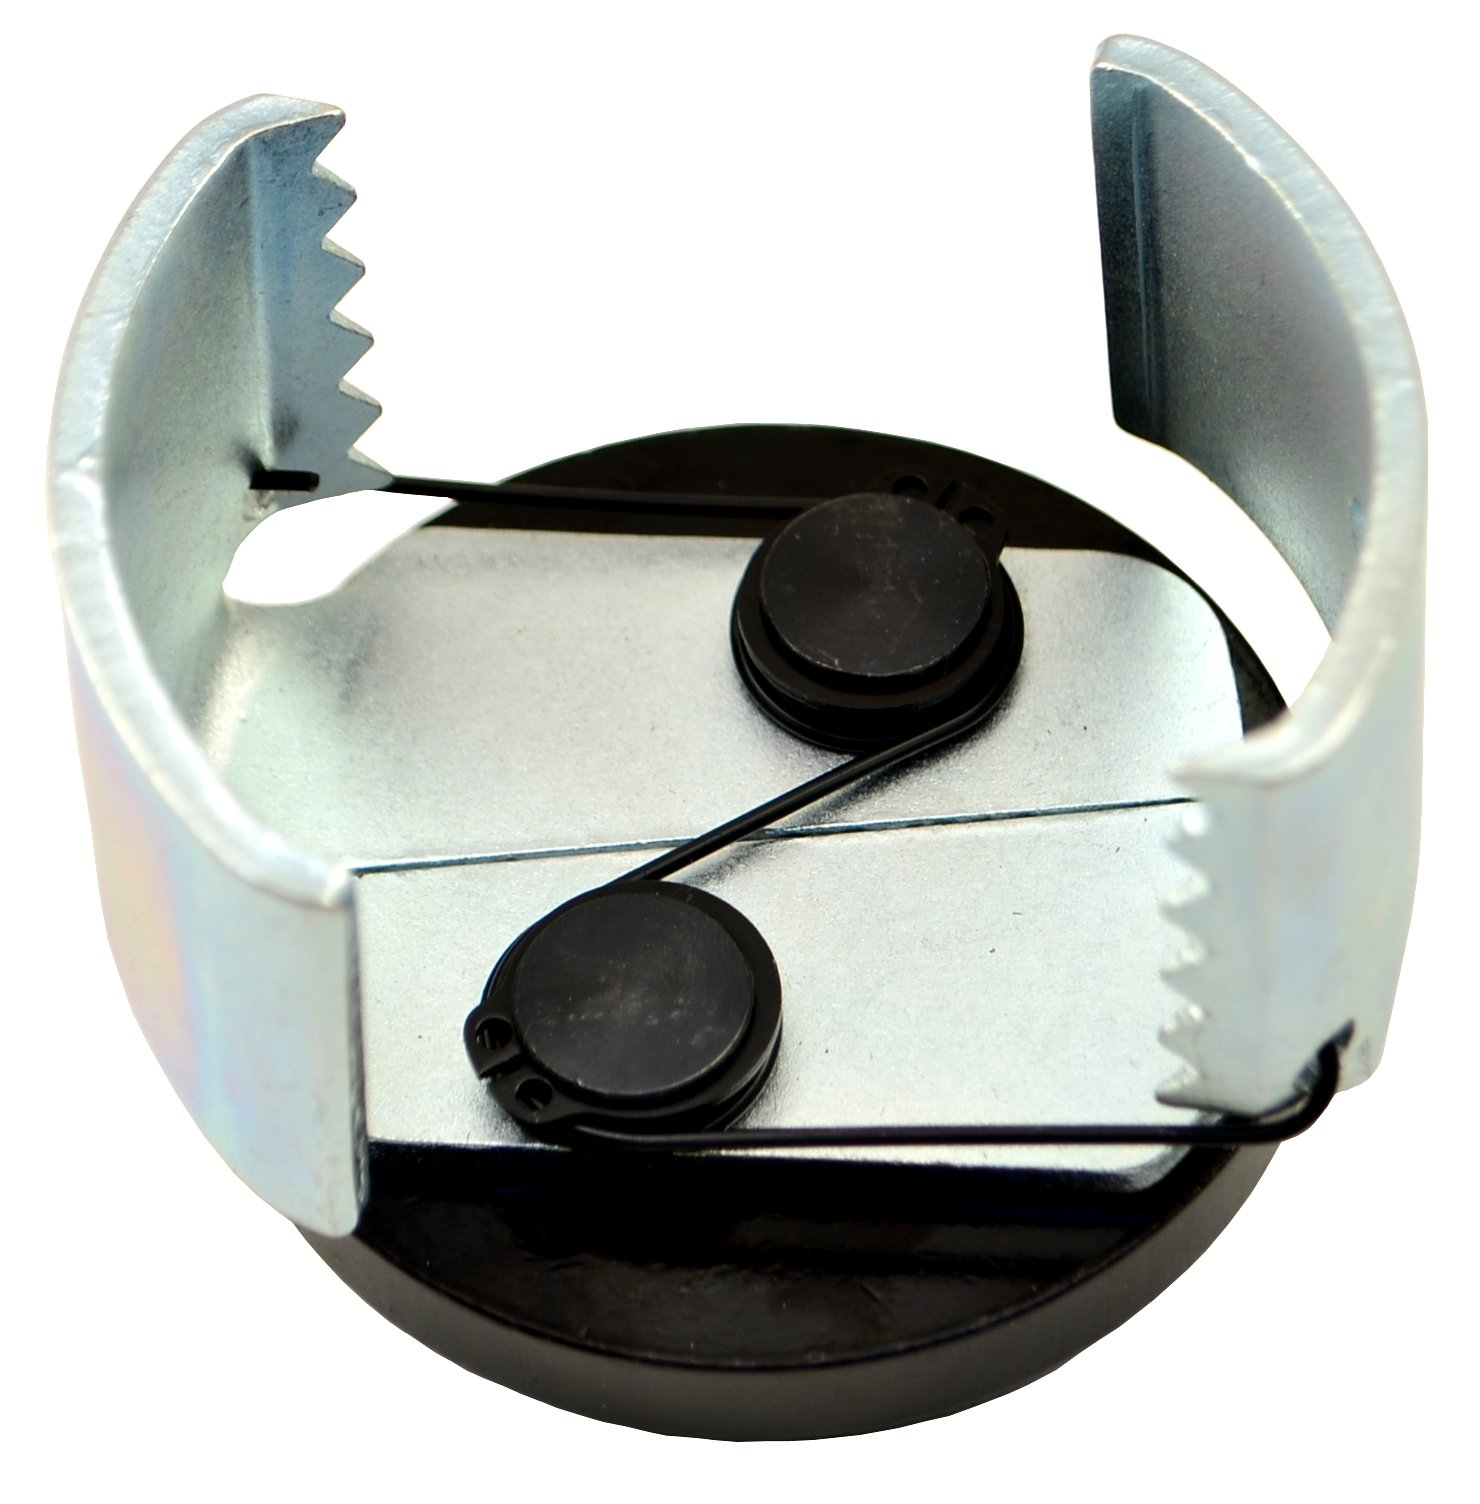 """Motivx Tools Small Adjustable Oil Filter Wrench for Removing 2.5"""" - 3.25"""" Diameter Spin-On Oil Filters"""